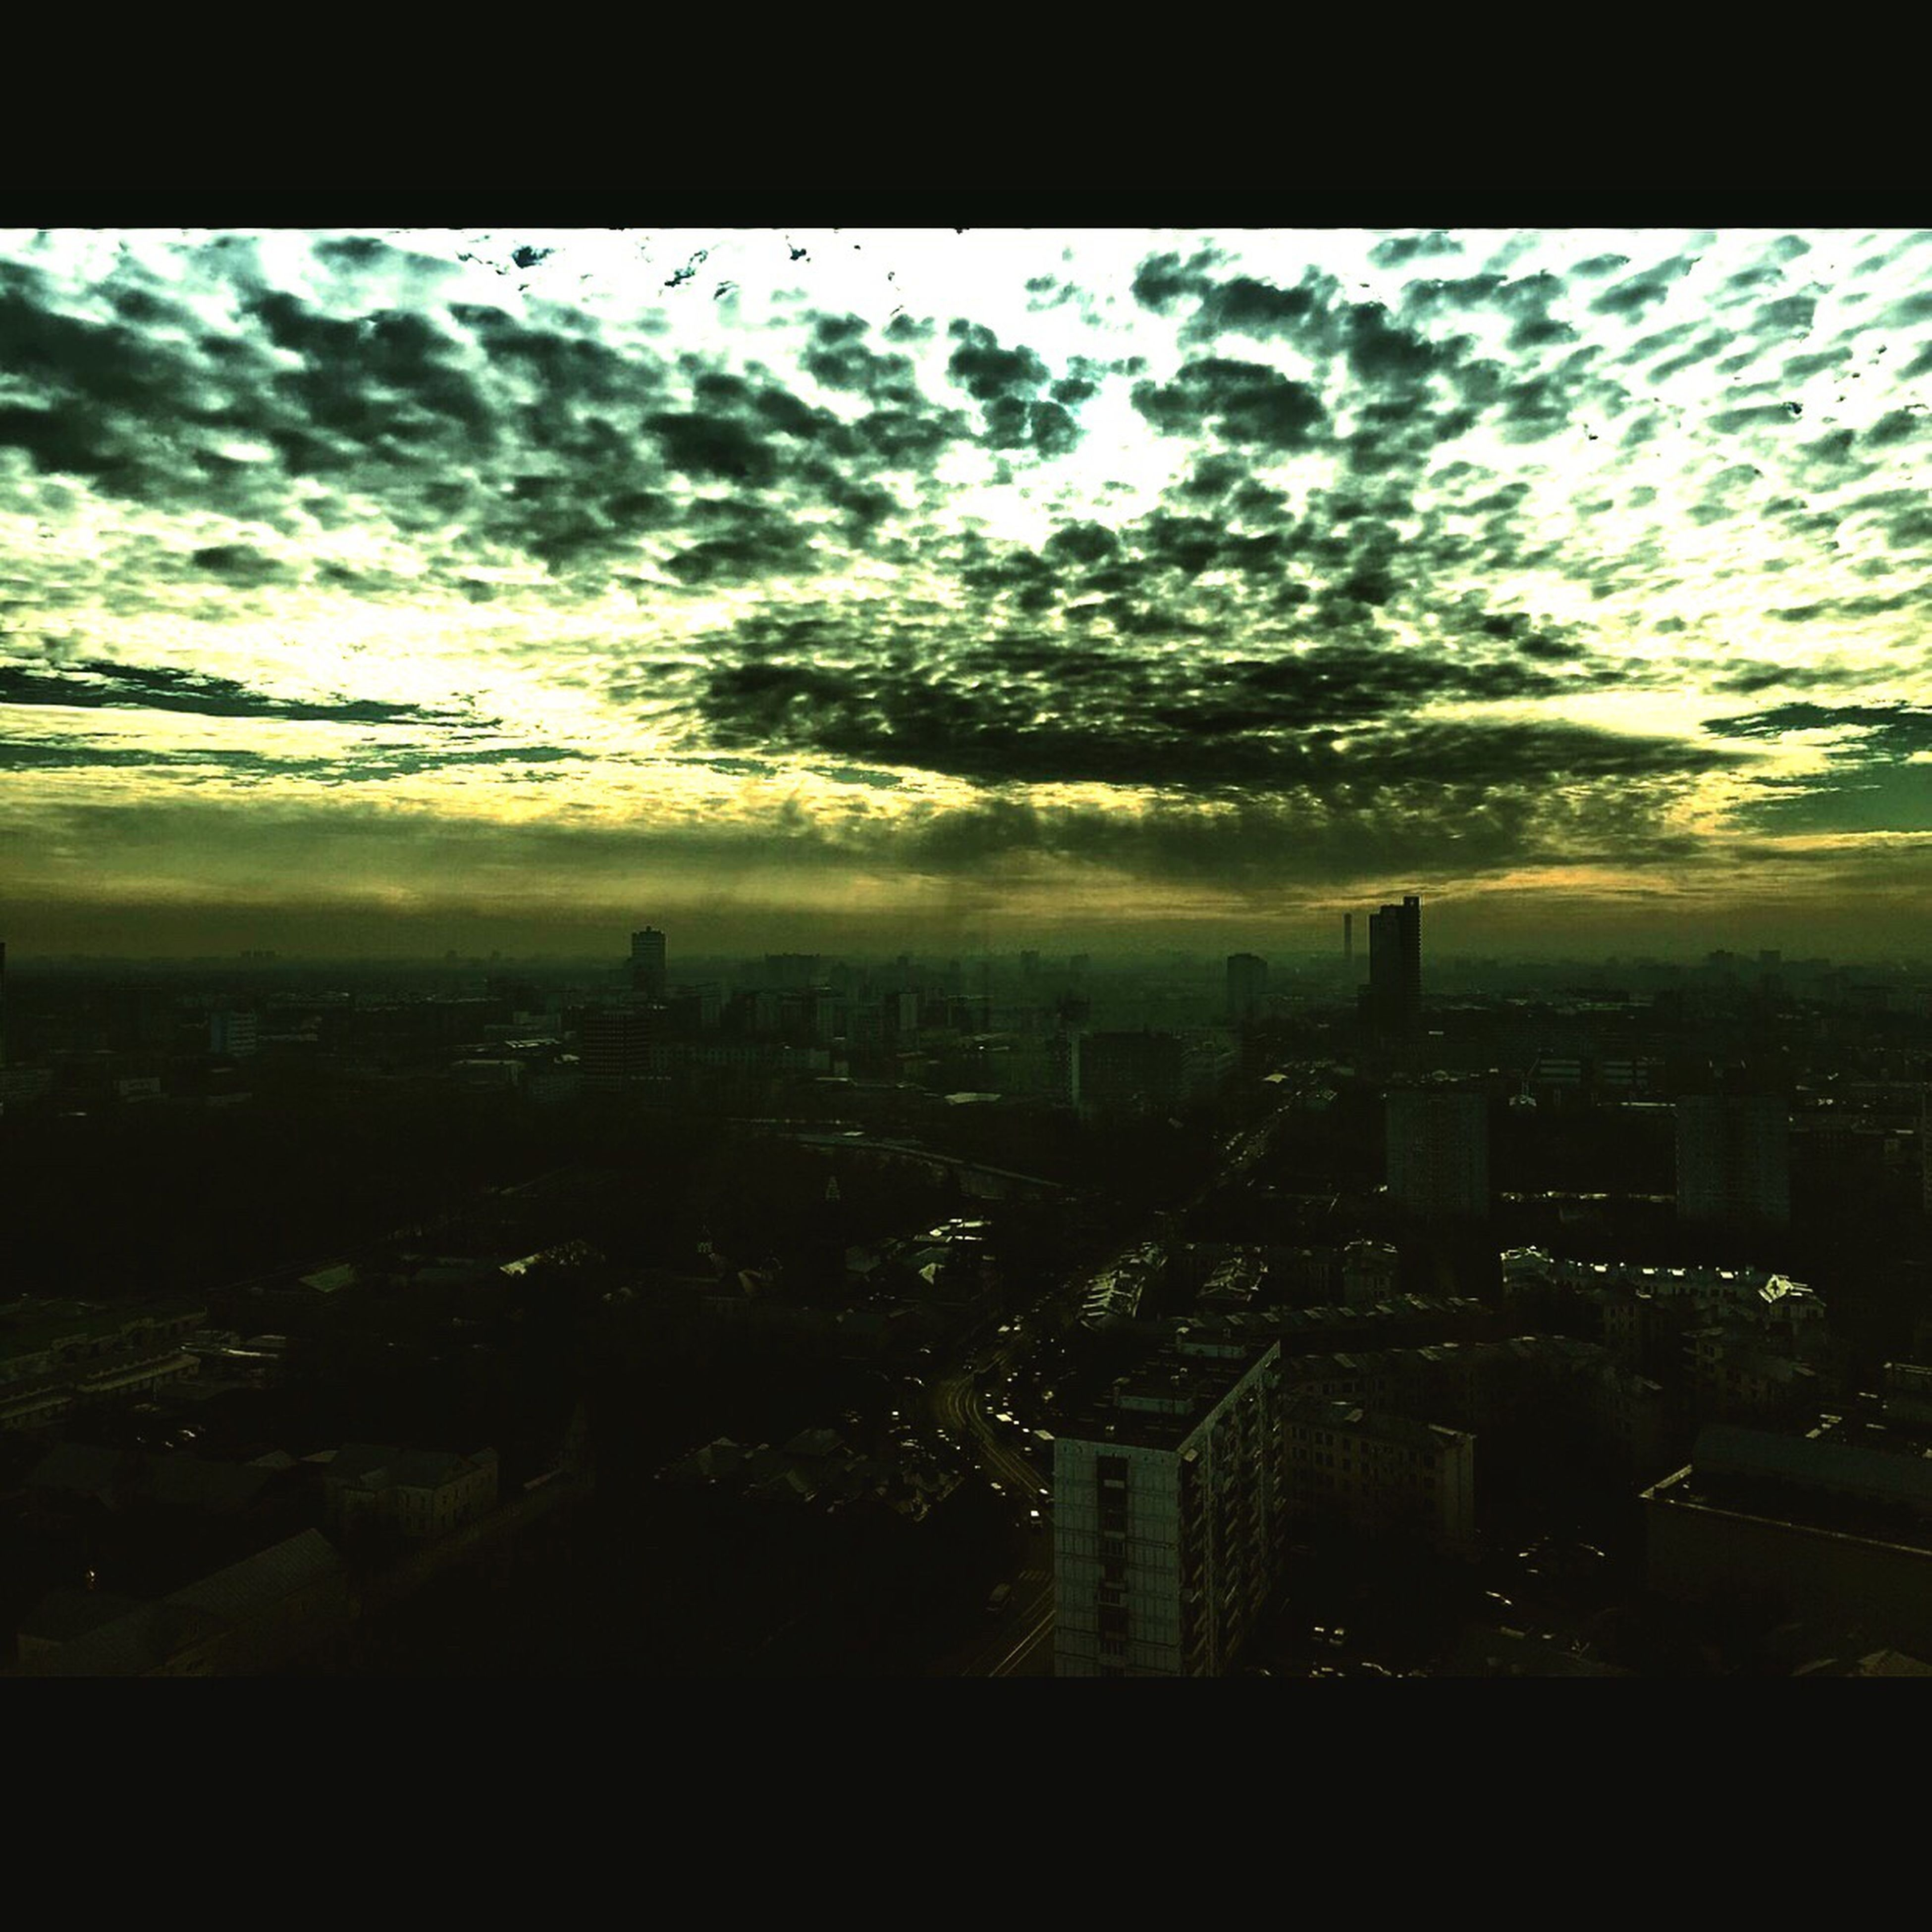 cityscape, city, building exterior, architecture, built structure, sky, skyscraper, crowded, cloud - sky, high angle view, residential district, auto post production filter, residential building, silhouette, dusk, no people, residential structure, tower, transfer print, outdoors